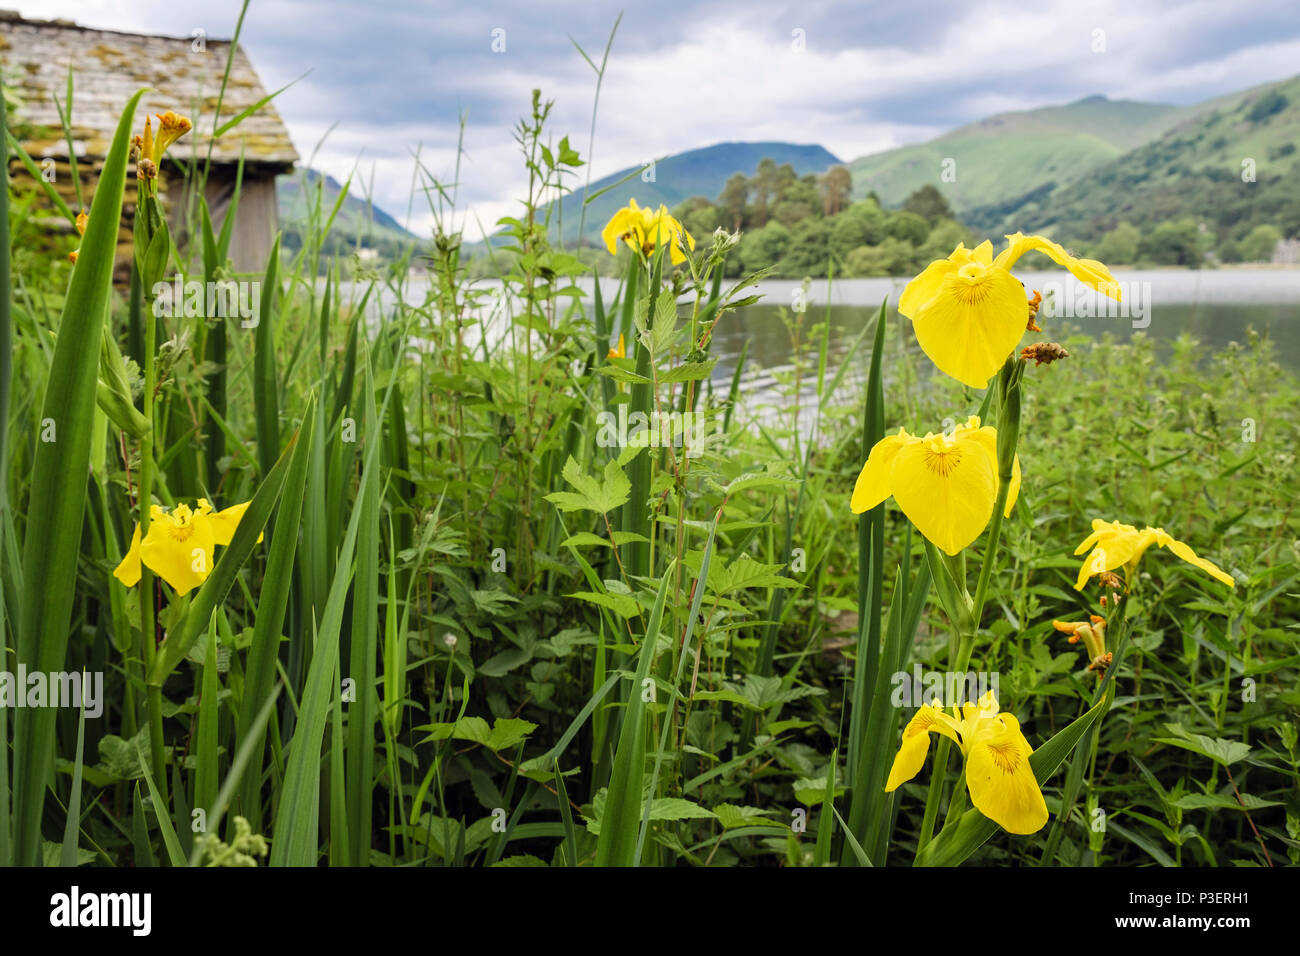 Flowers of Yellow Flag Iris (Iris pseudacorus) growing wild beside Grasmere lake boathouse in summer. Cumbria Lake District National Park England UK - Stock Image